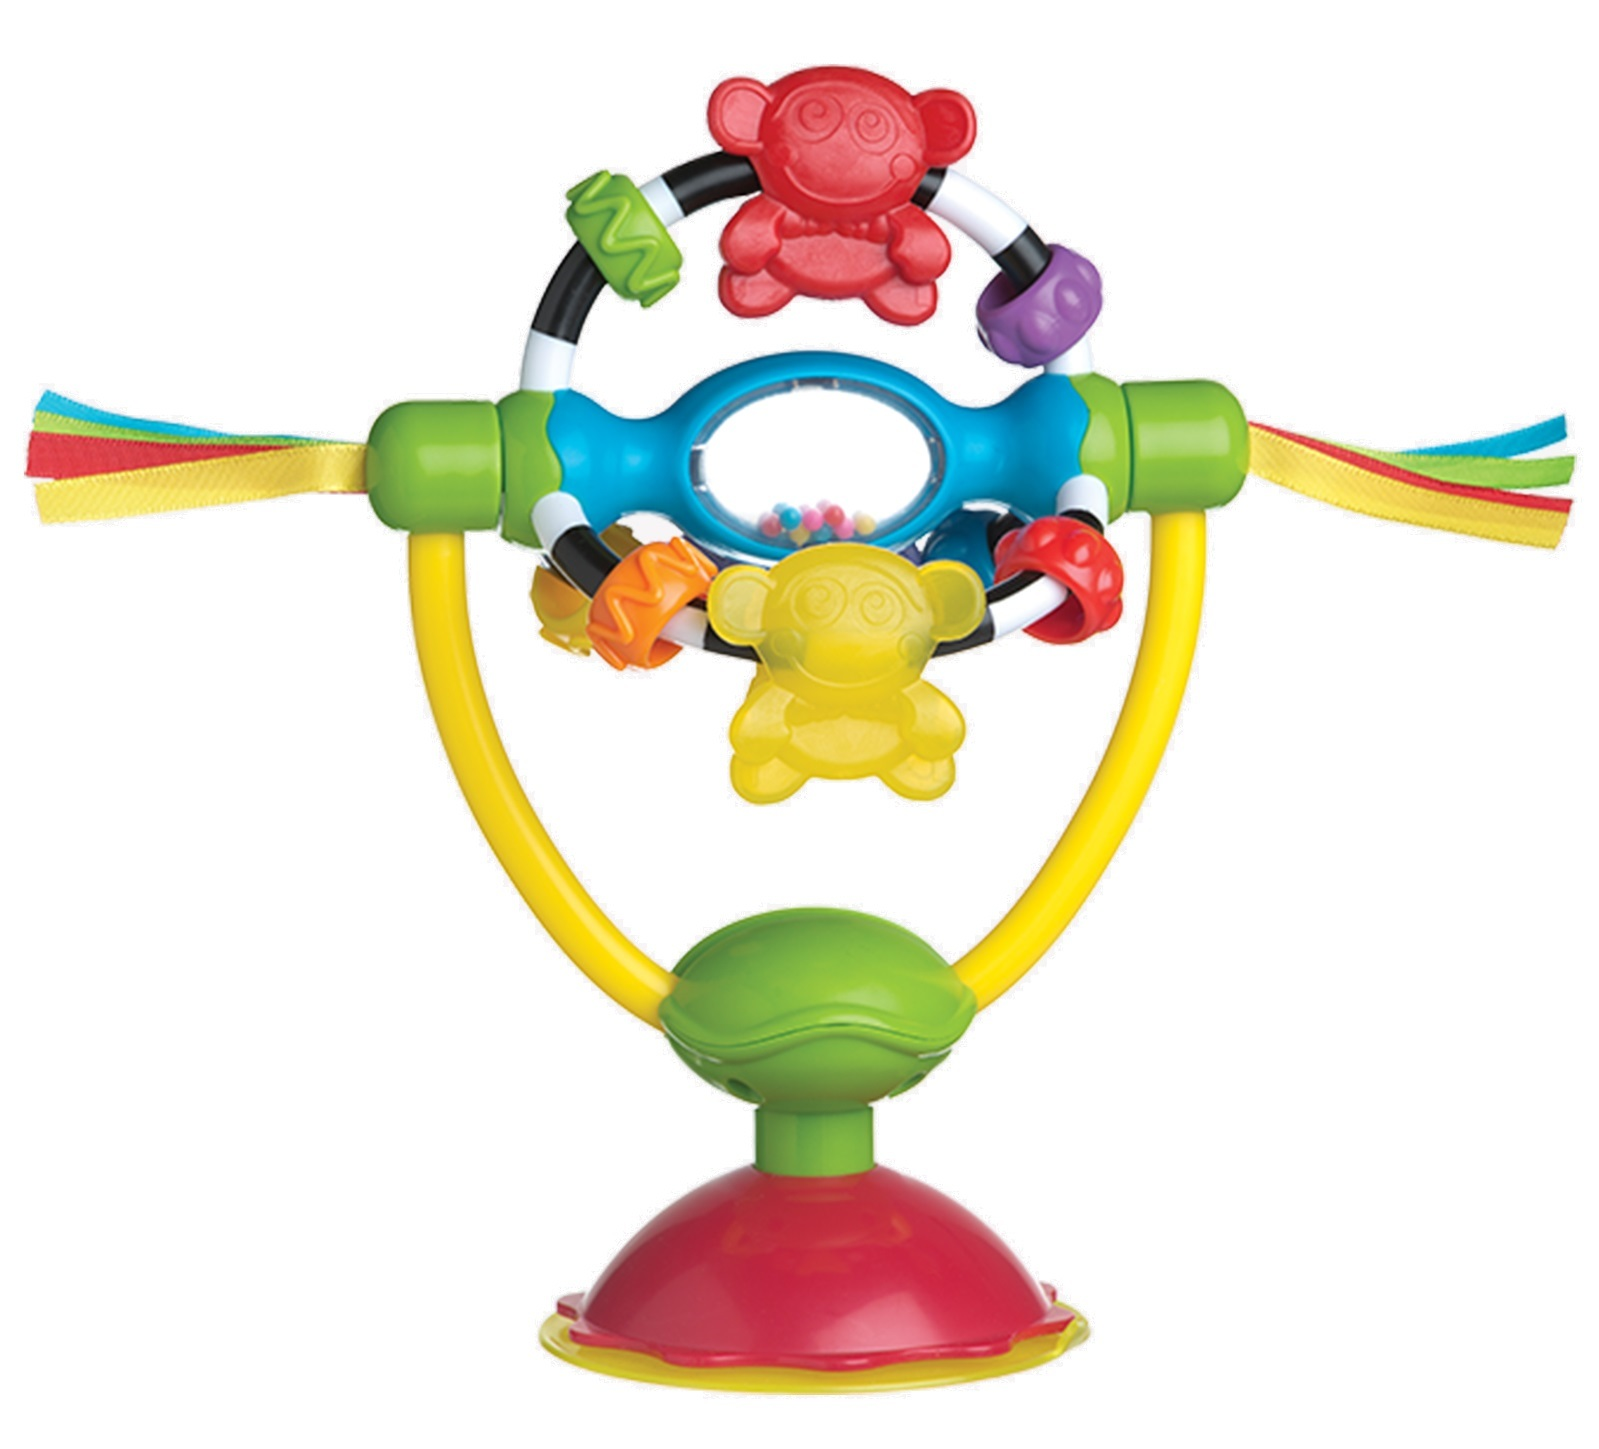 Playgro: High Chair - Spinning Toy image